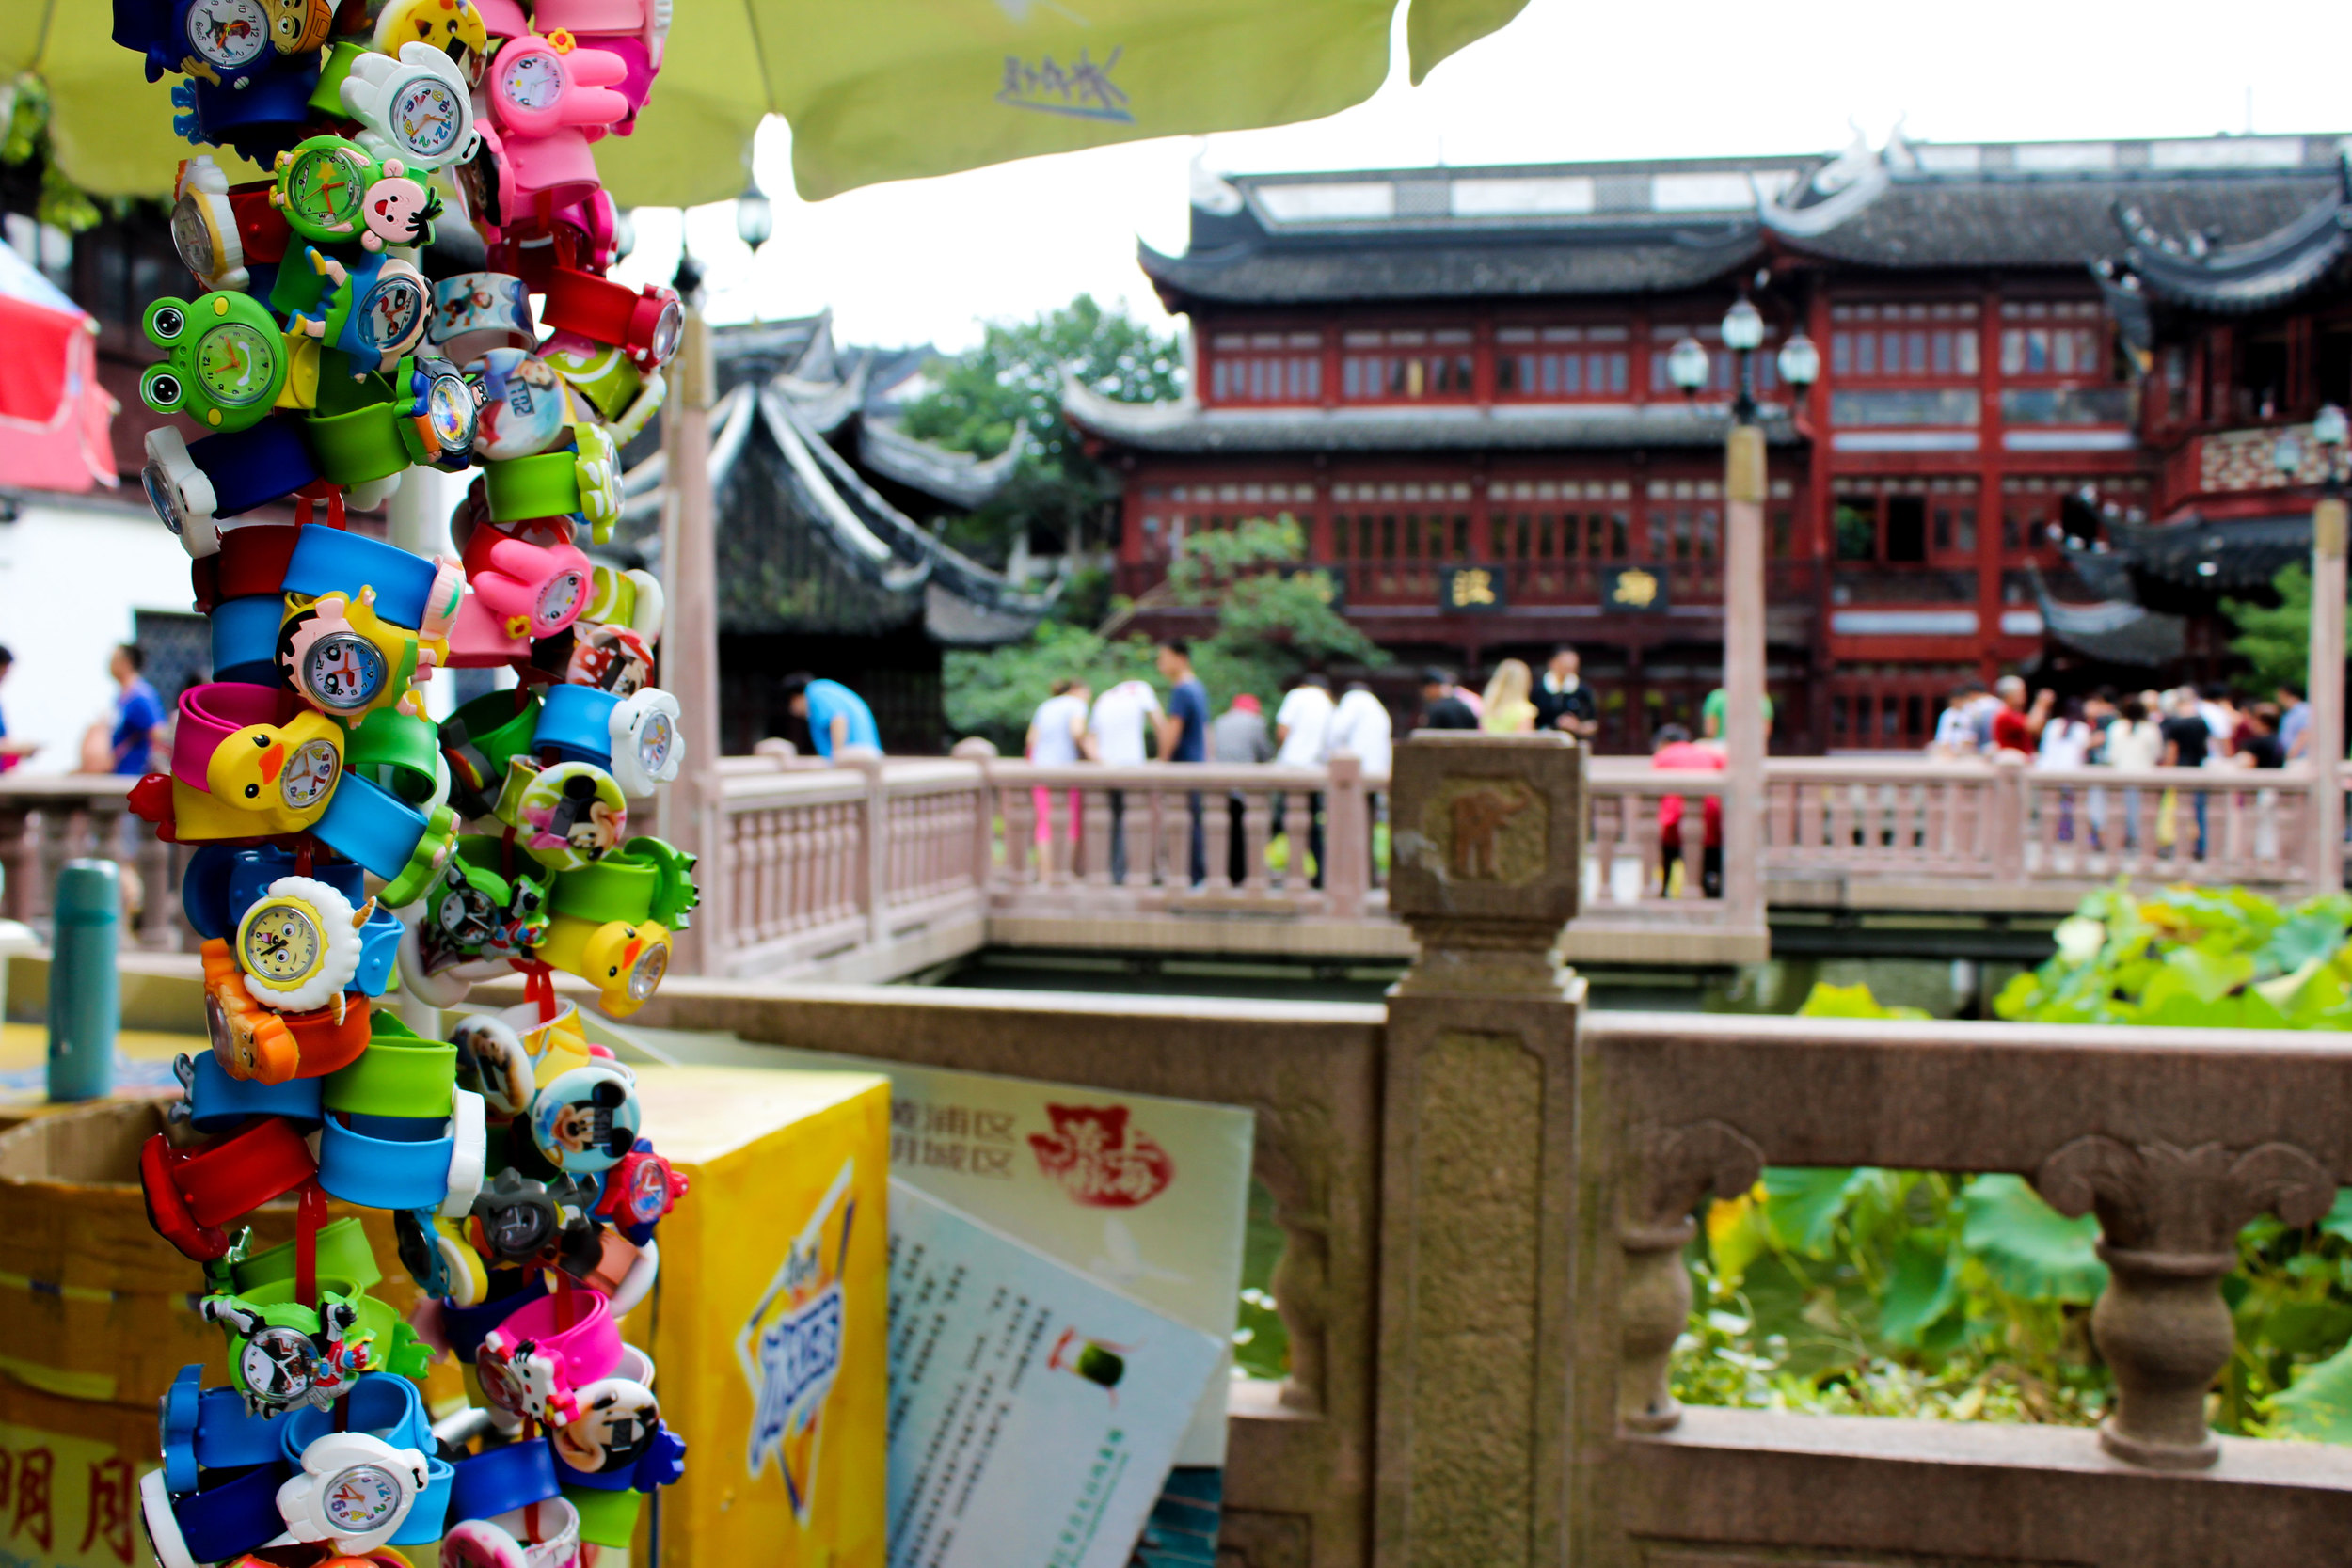 Yu gardens are a beautifully preserved moment in history, the surrounding atmosphere,not so much.